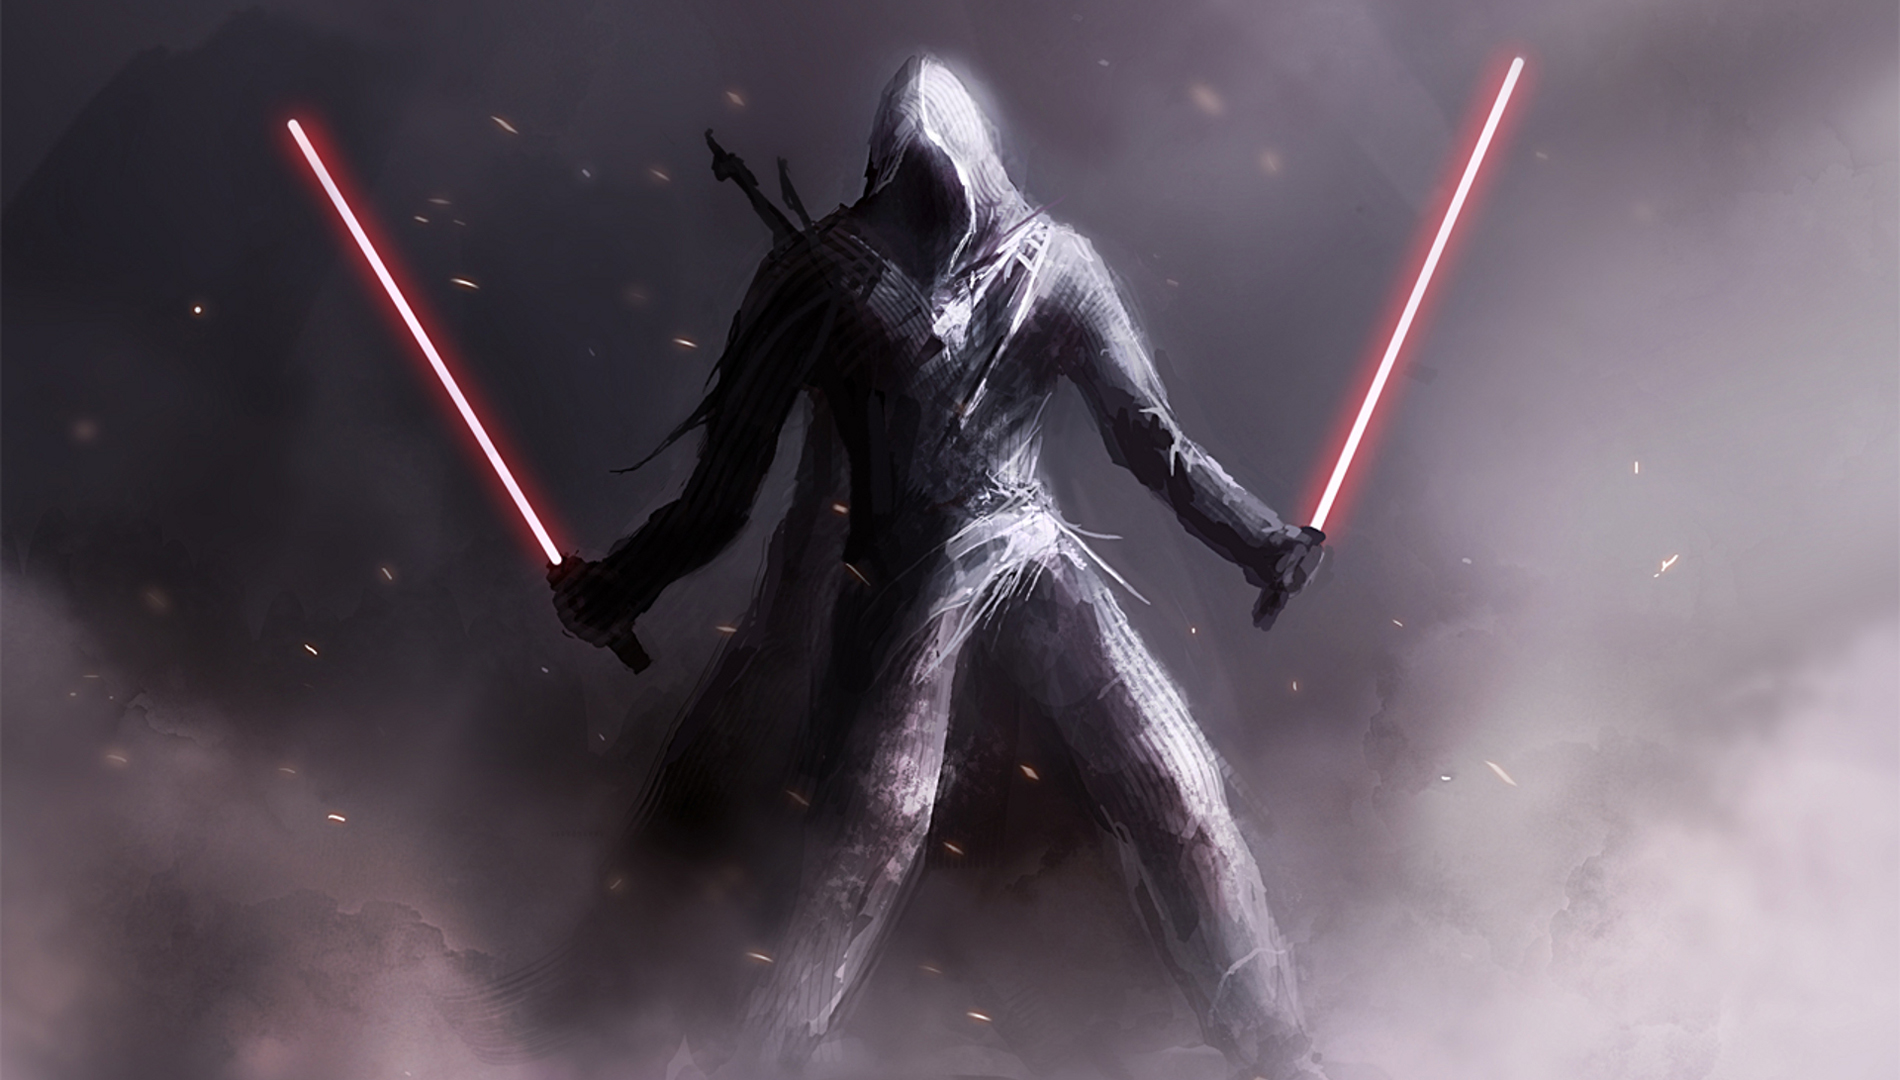 93 Revan Wallpapers On Wallpapersafari